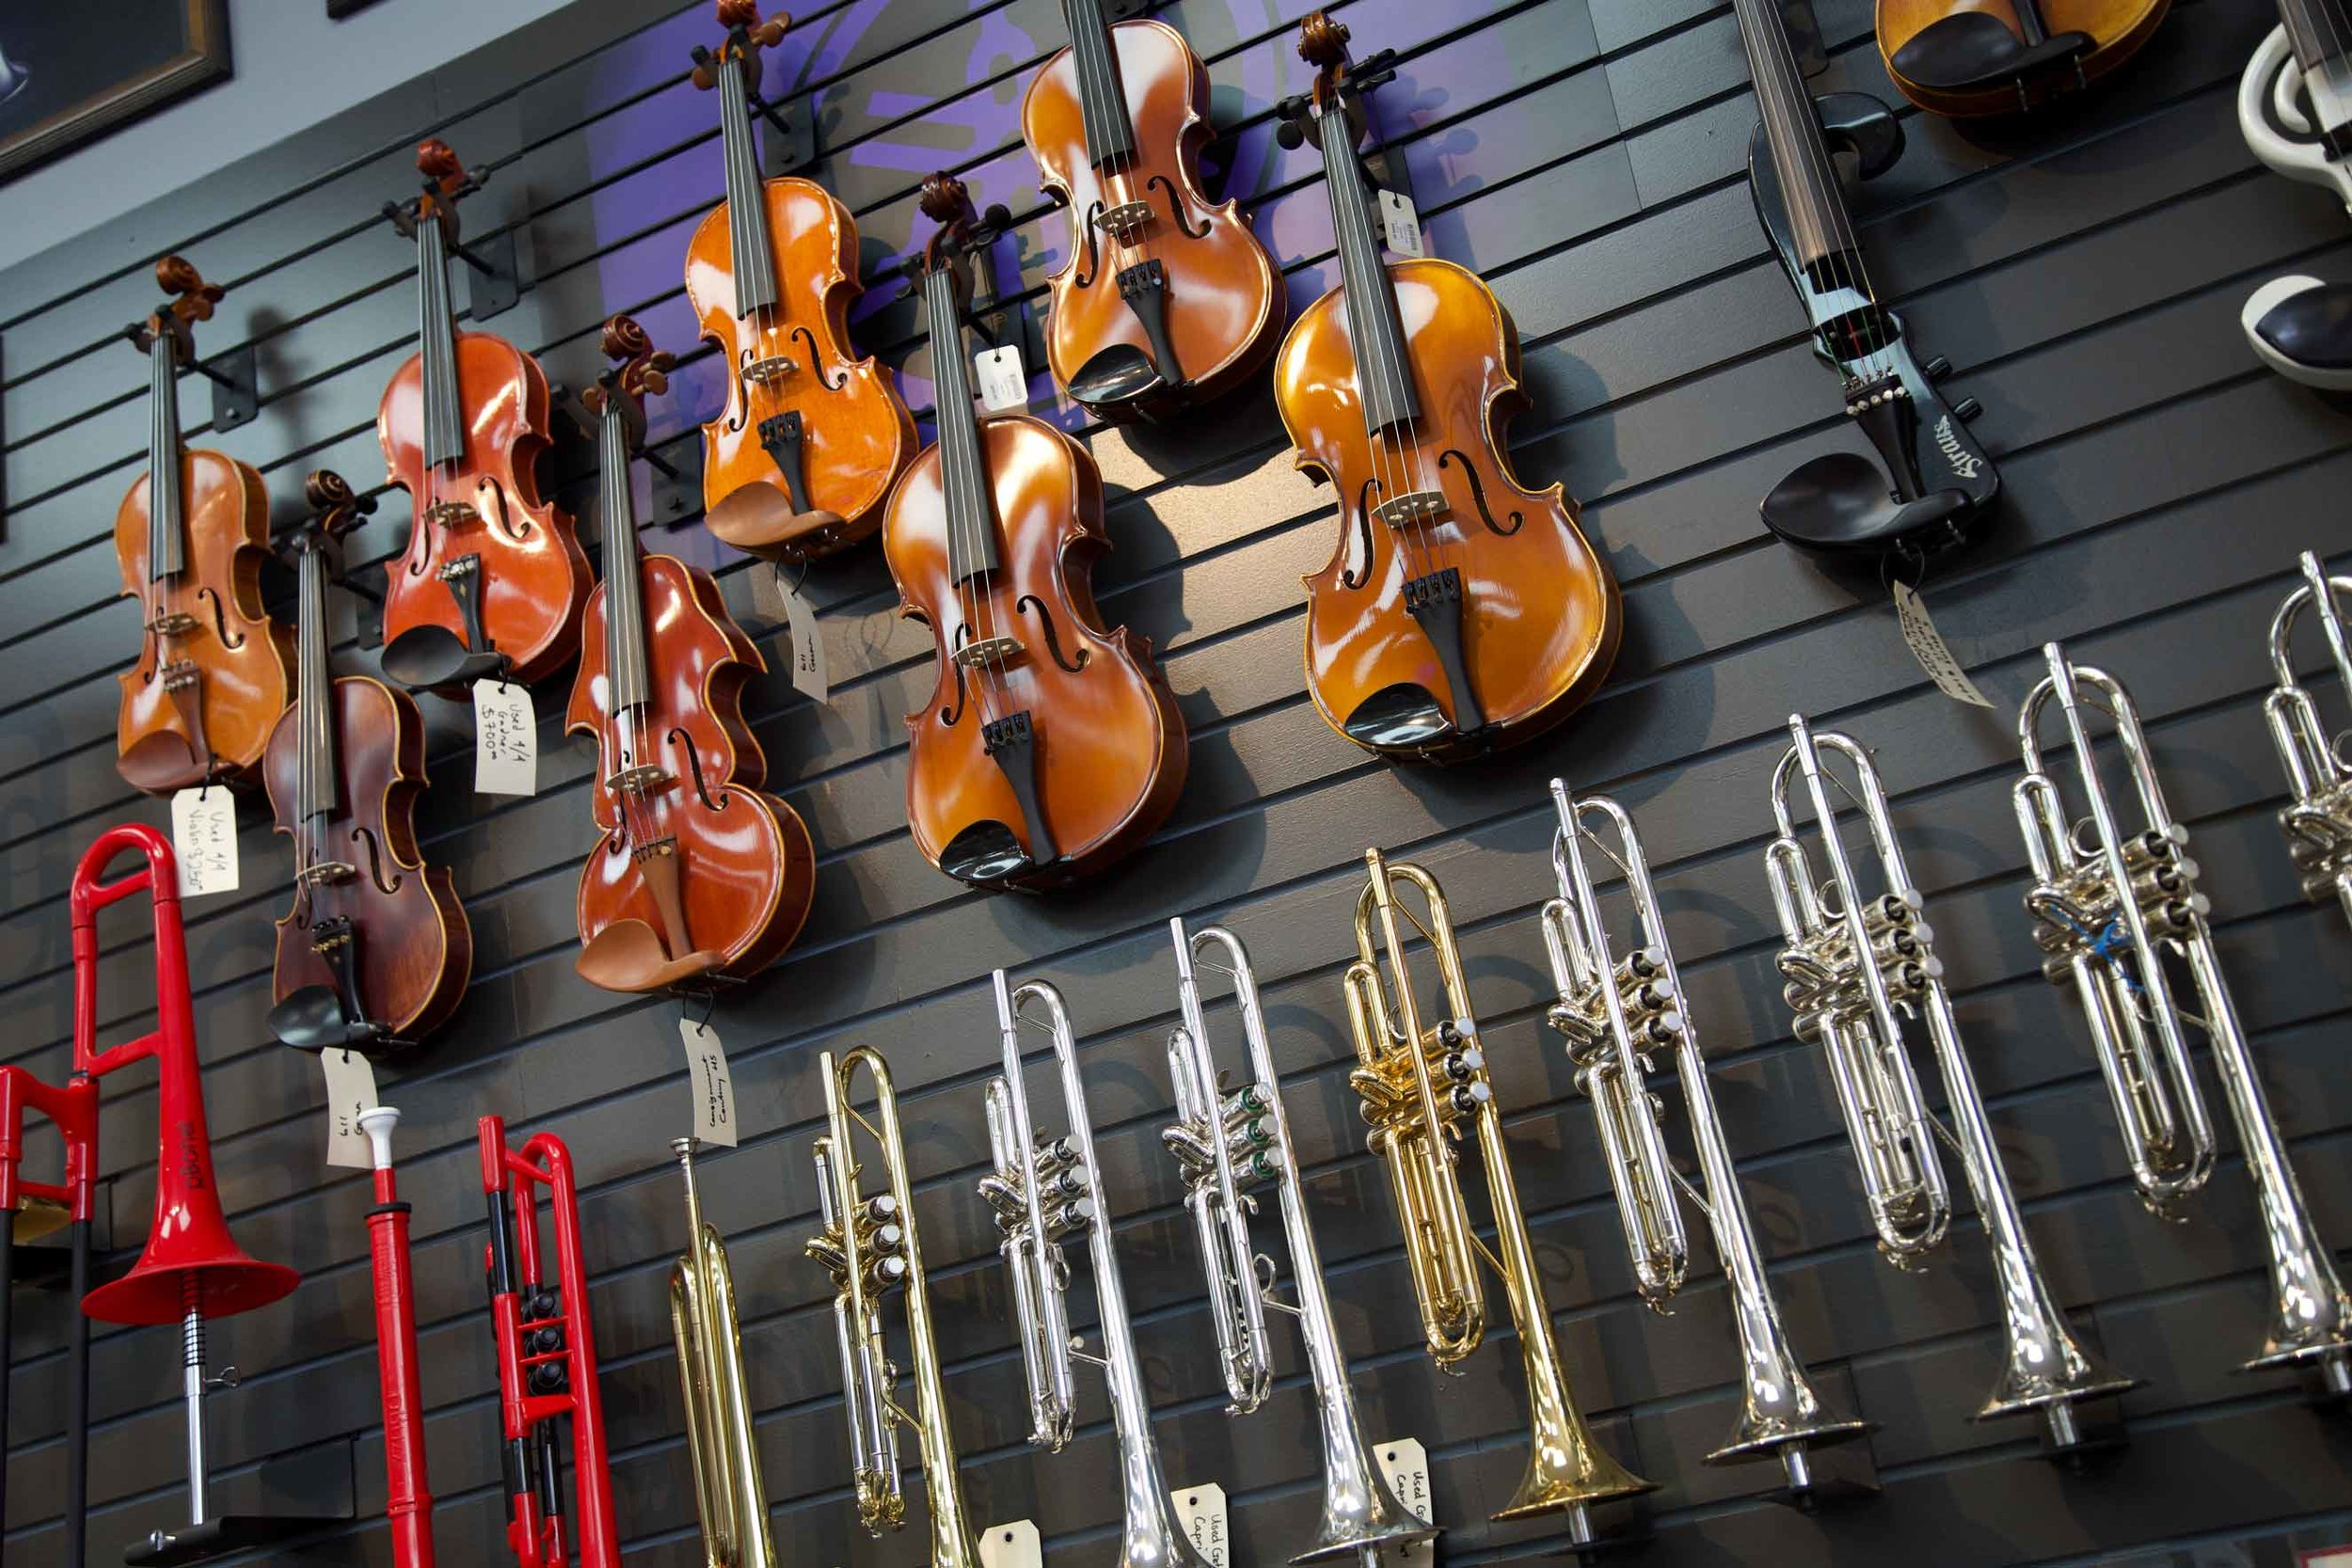 An Instrument For Everyone. - From electric guitars to flutes, trombones to hand drums, electronic and acoustic , Tigard Music has every musician, aspiring to pro covered with a wide selection of new and used instruments for sale that are of the highest quality and within a variety of budgets.If we don't have it, we will find it for you. Contact us today for more info.503-620-2844